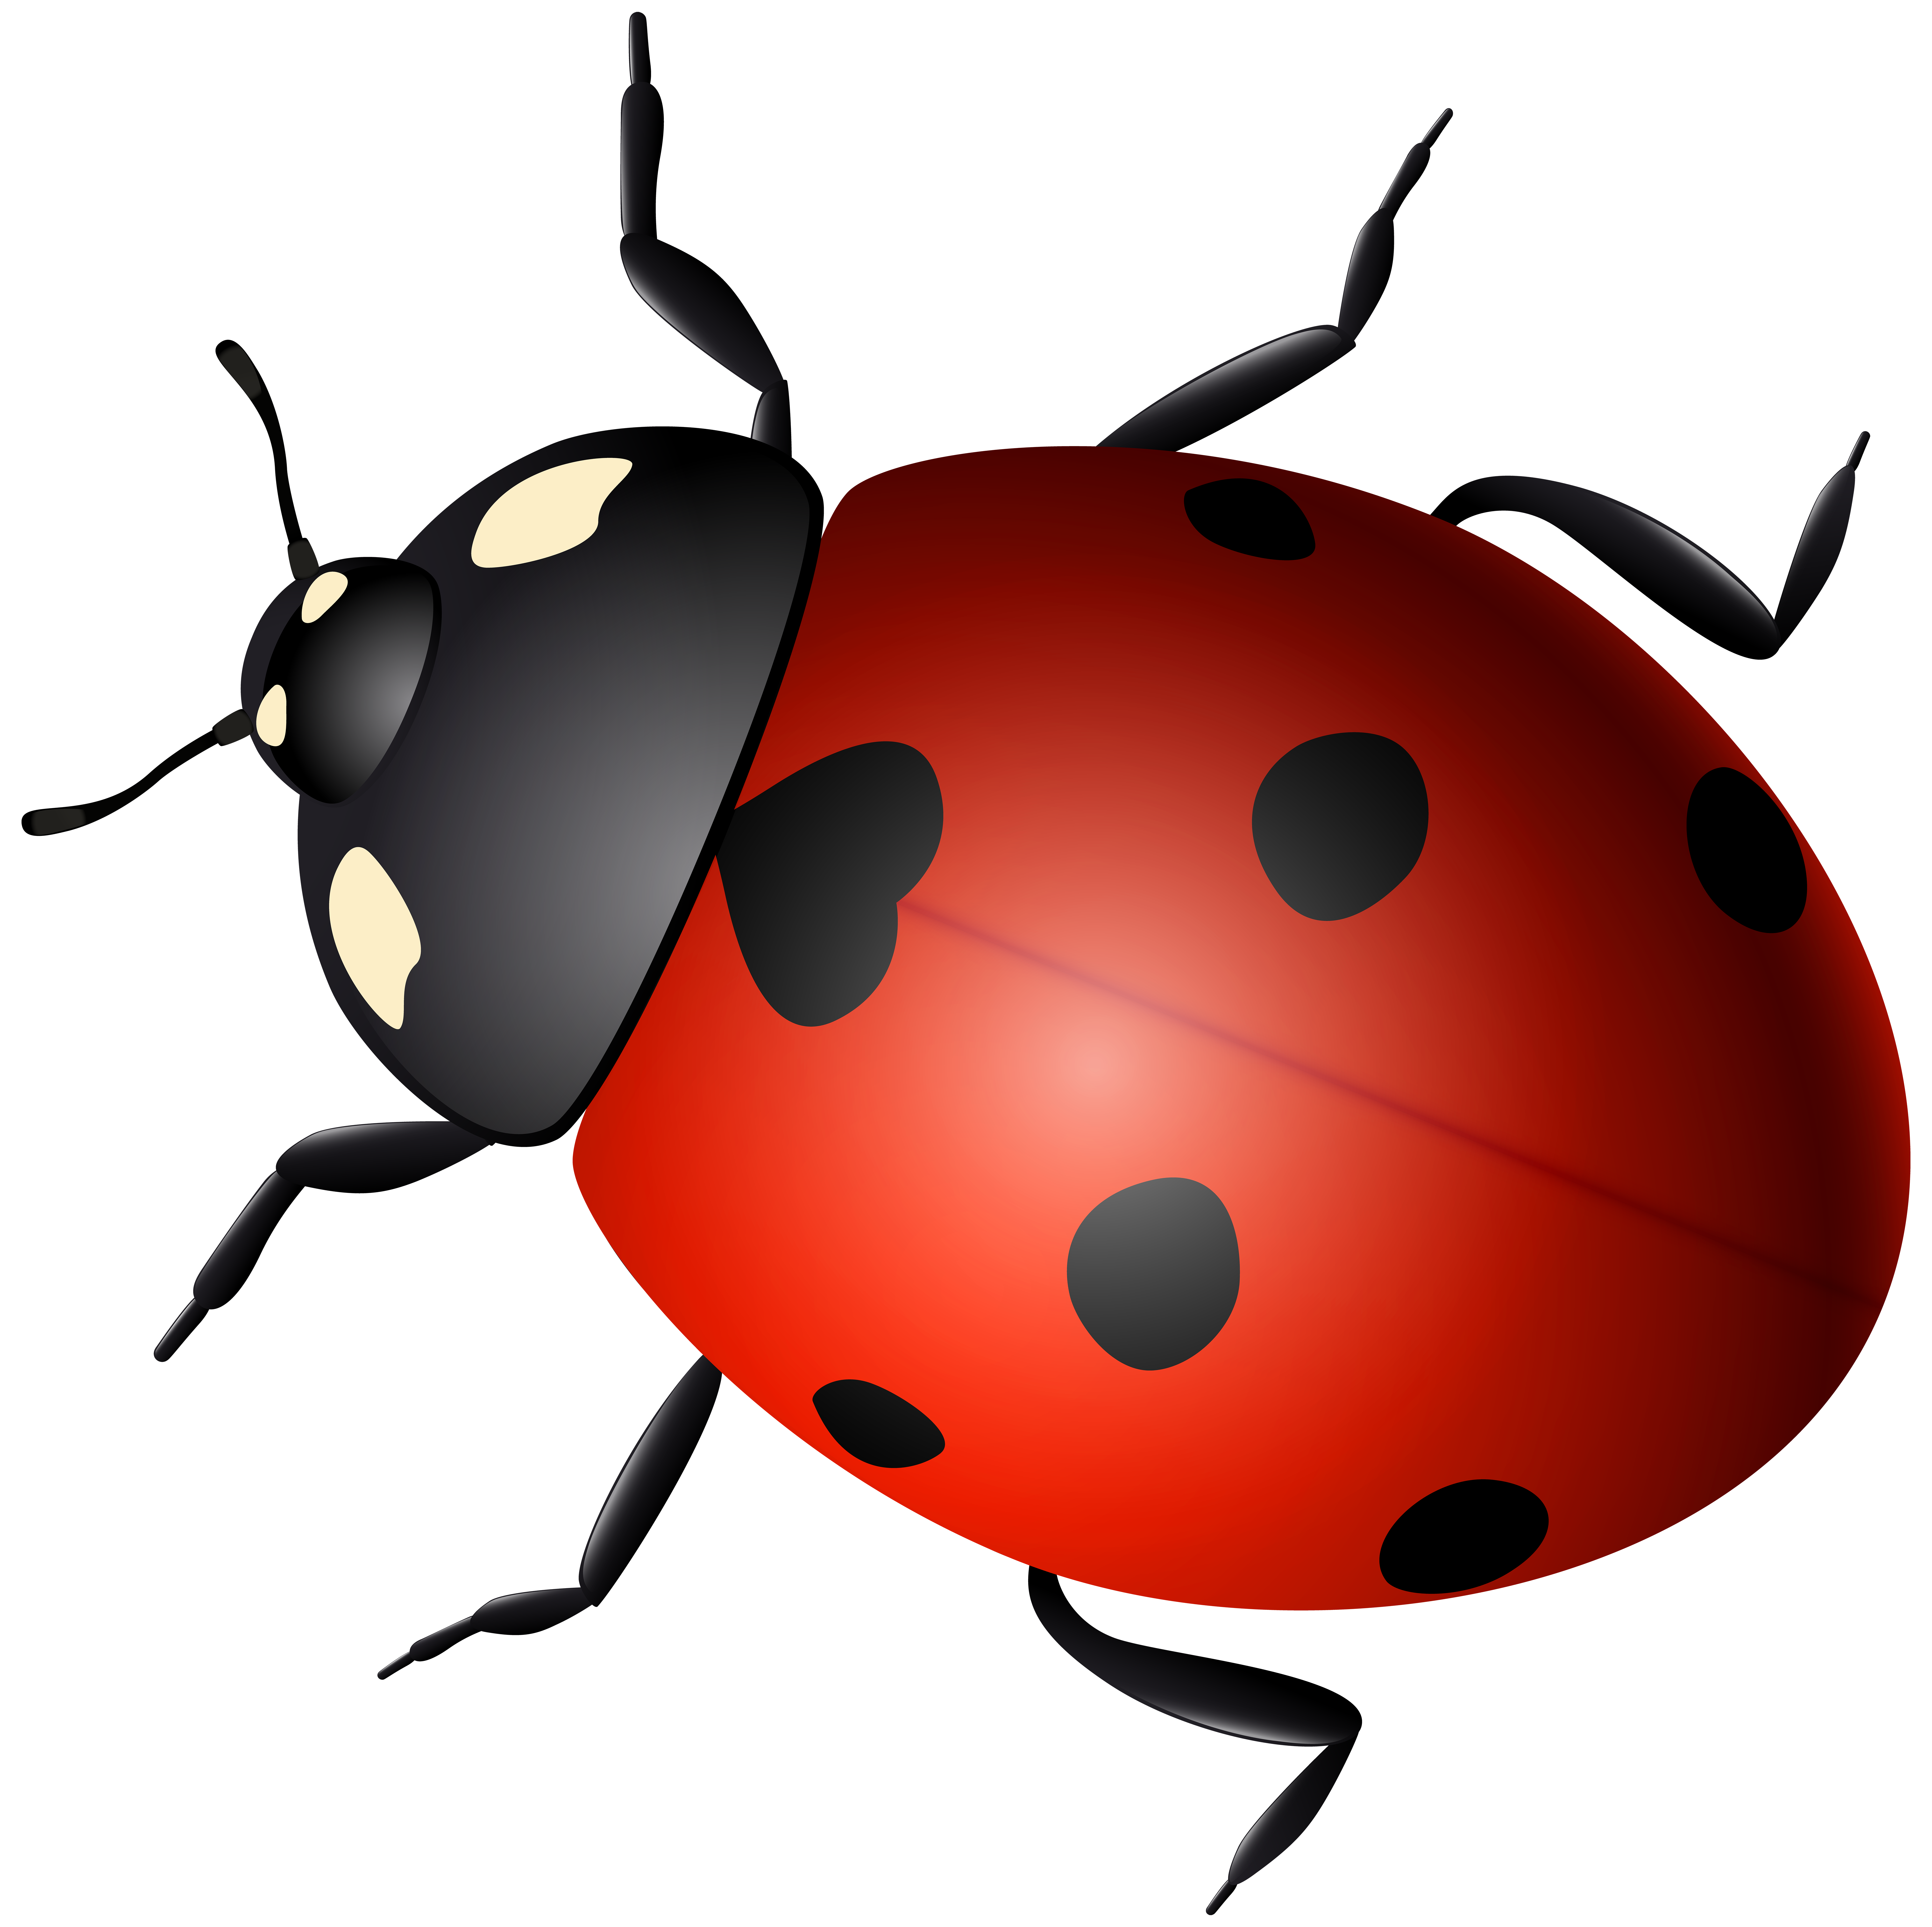 Decorative image gallery yopriceville. Transparent ladybug banner black and white library